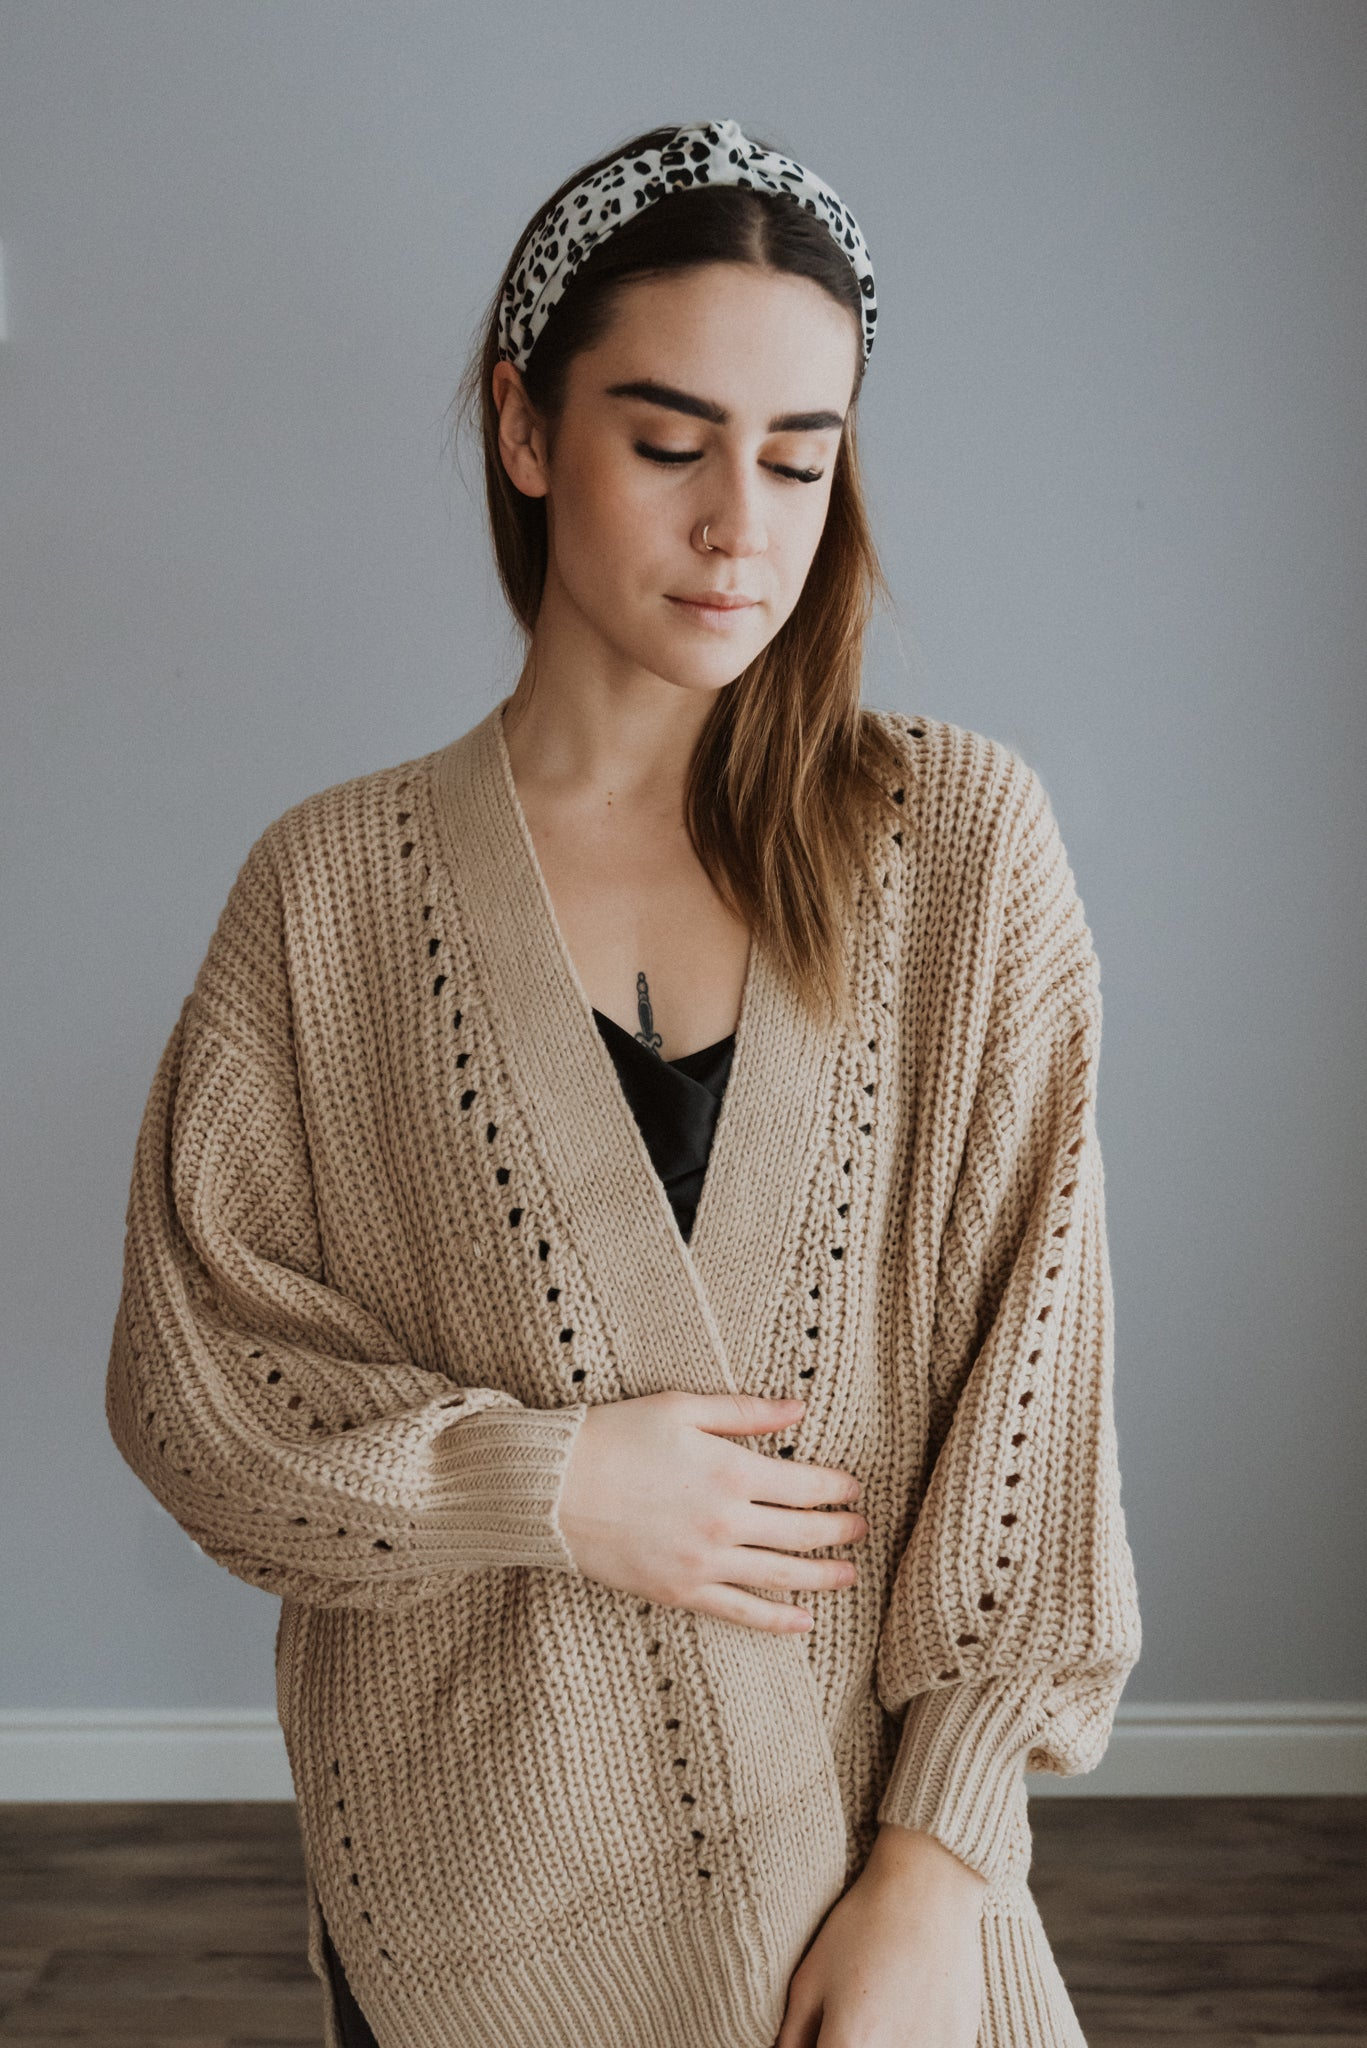 zSOLD OUTz Oh My Cozy Knit Cardigan